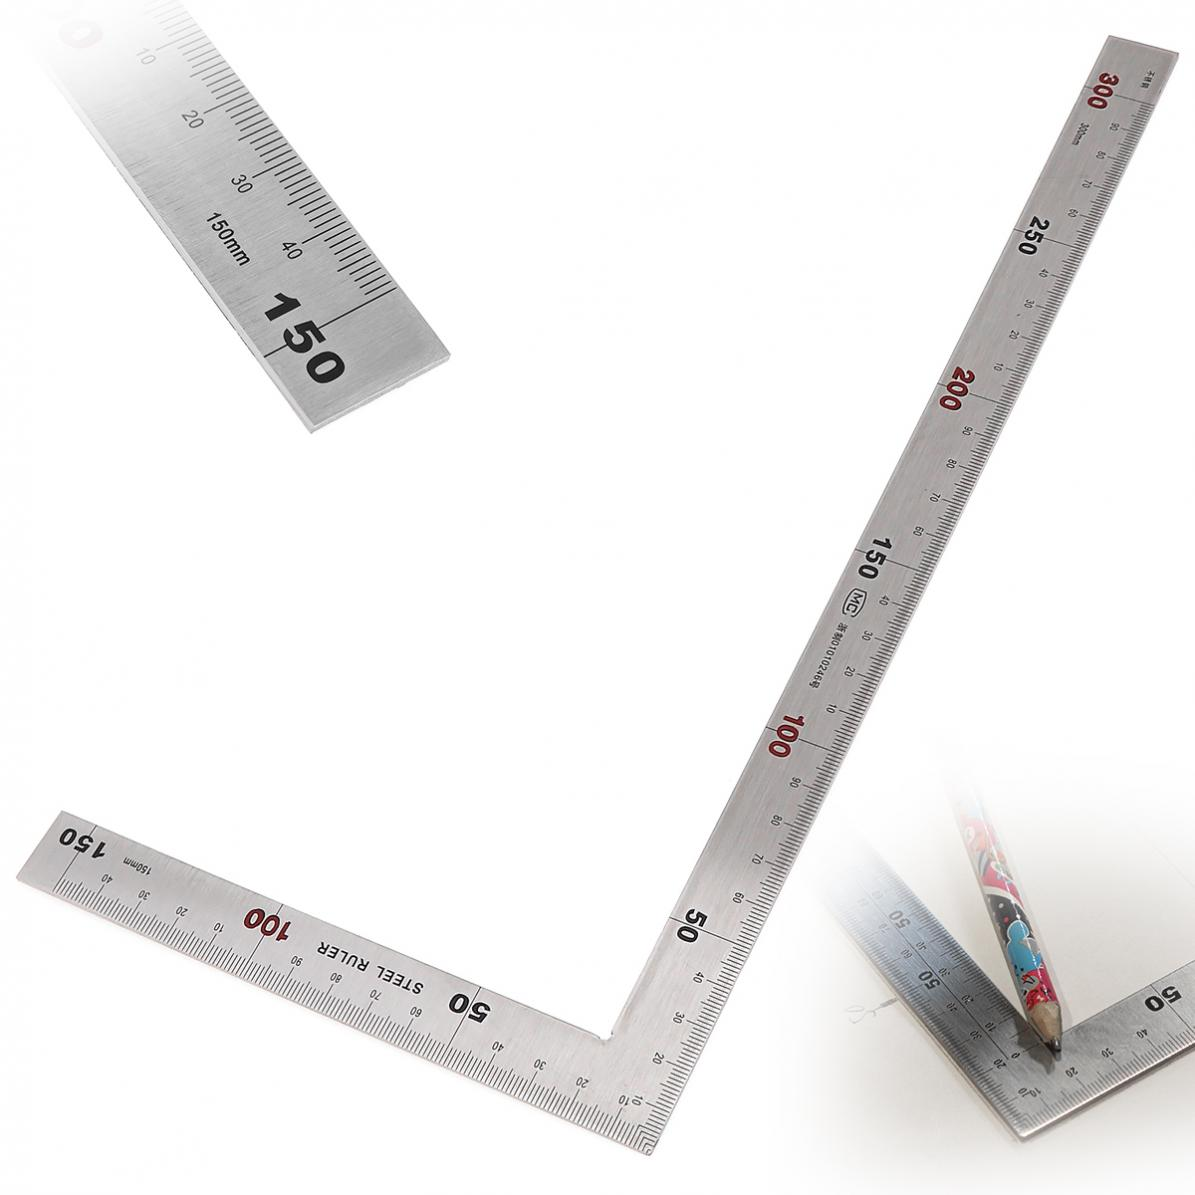 Stainless Steel Right Angle Ruler 150 X 300mm 90 Degree Angle Metric Ruler